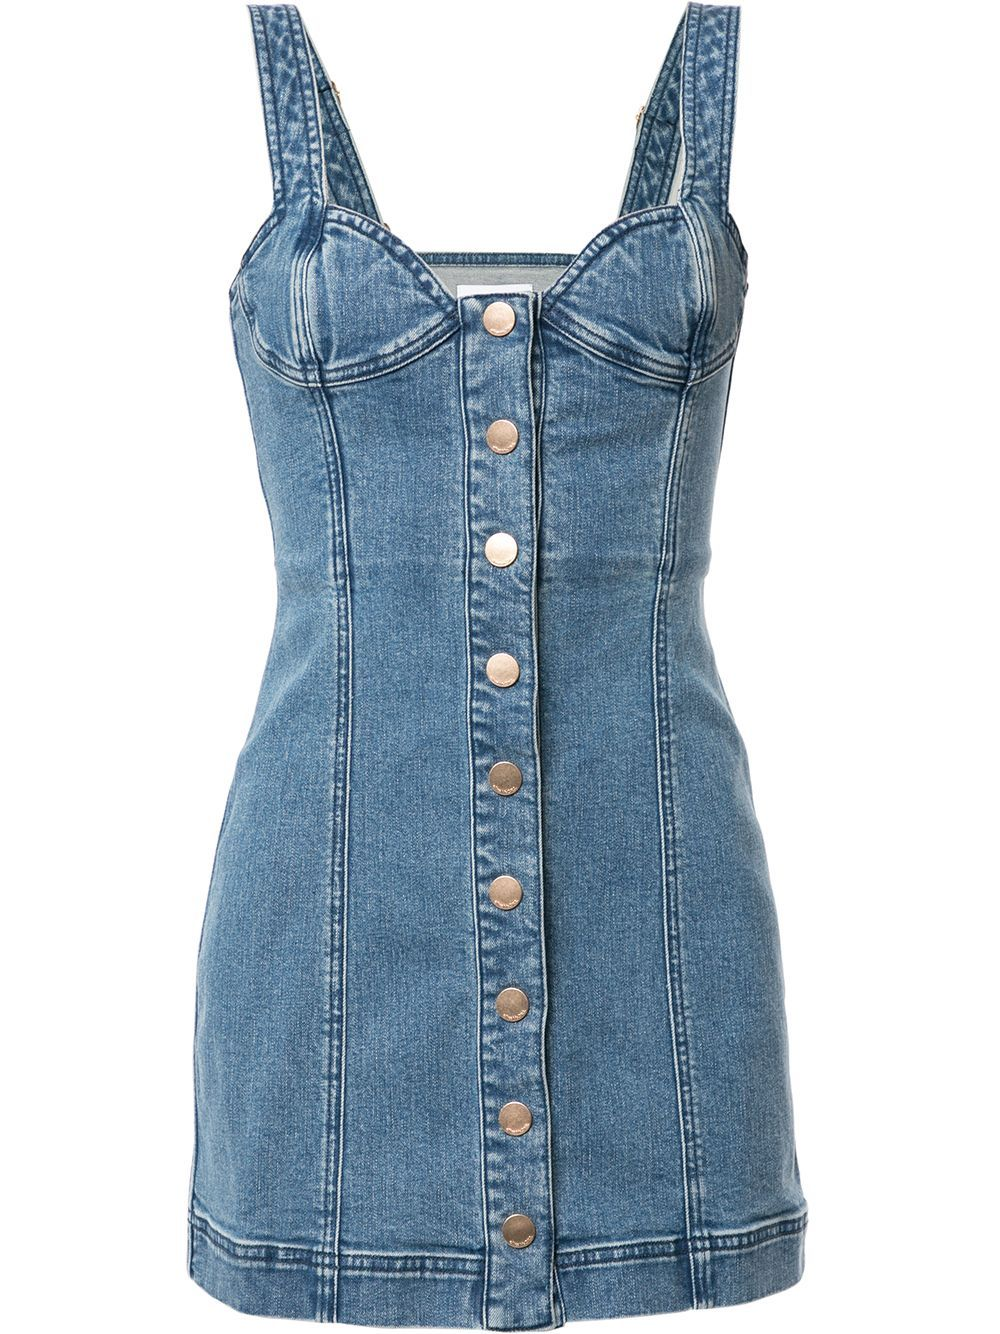 Alice Mccall Mystical Moments Bustier Denim Mini Dress Farfetch Denim Mini Dress Denim Dress Outfit Summer Dress Outfits [ 1334 x 1000 Pixel ]